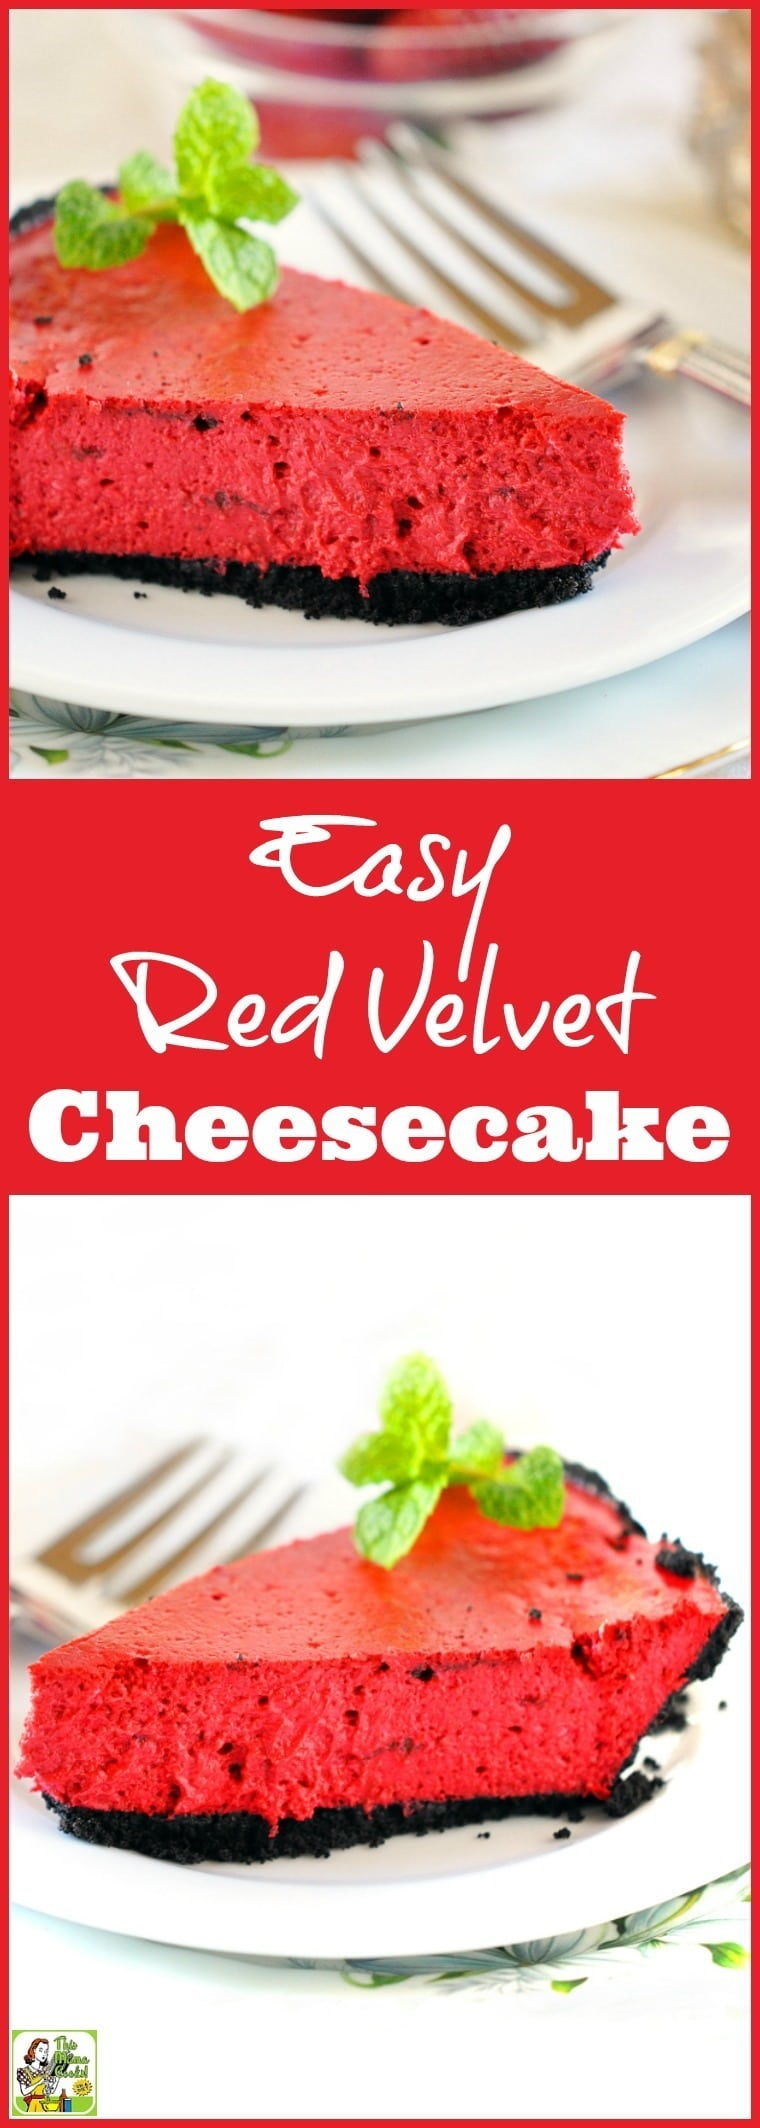 Looking for an Easy Red Velvet Cheesecake recipe? Click to get this simple and healthy dessert recipe for Valentine's Day, Christmas, Fourth of July, Memorial Day, Labor Day, picnics, parties, and barbecues. Can be frozen. Gluten free and dairy free options. Easy to make and diabetic friendly.